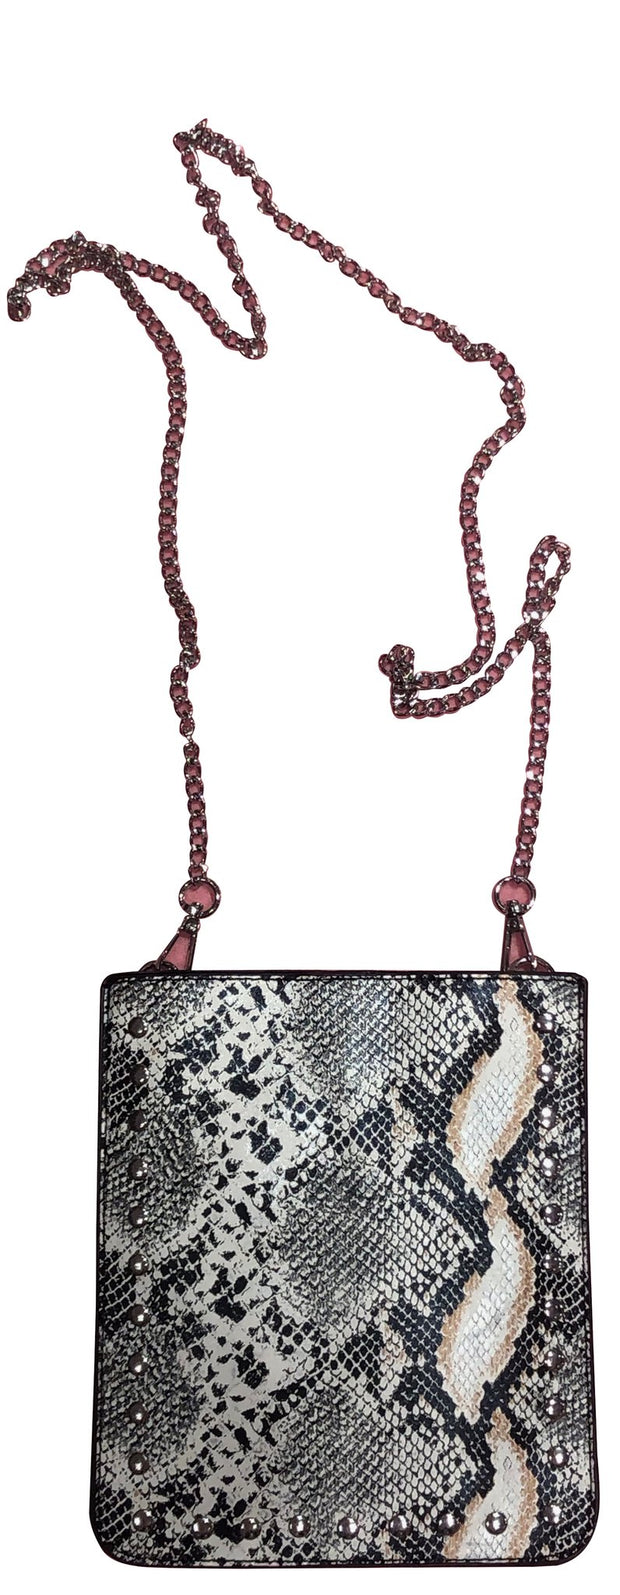 Ahdorned - Studded Vegan Python Cross Body Phone Case Holder w/Chain